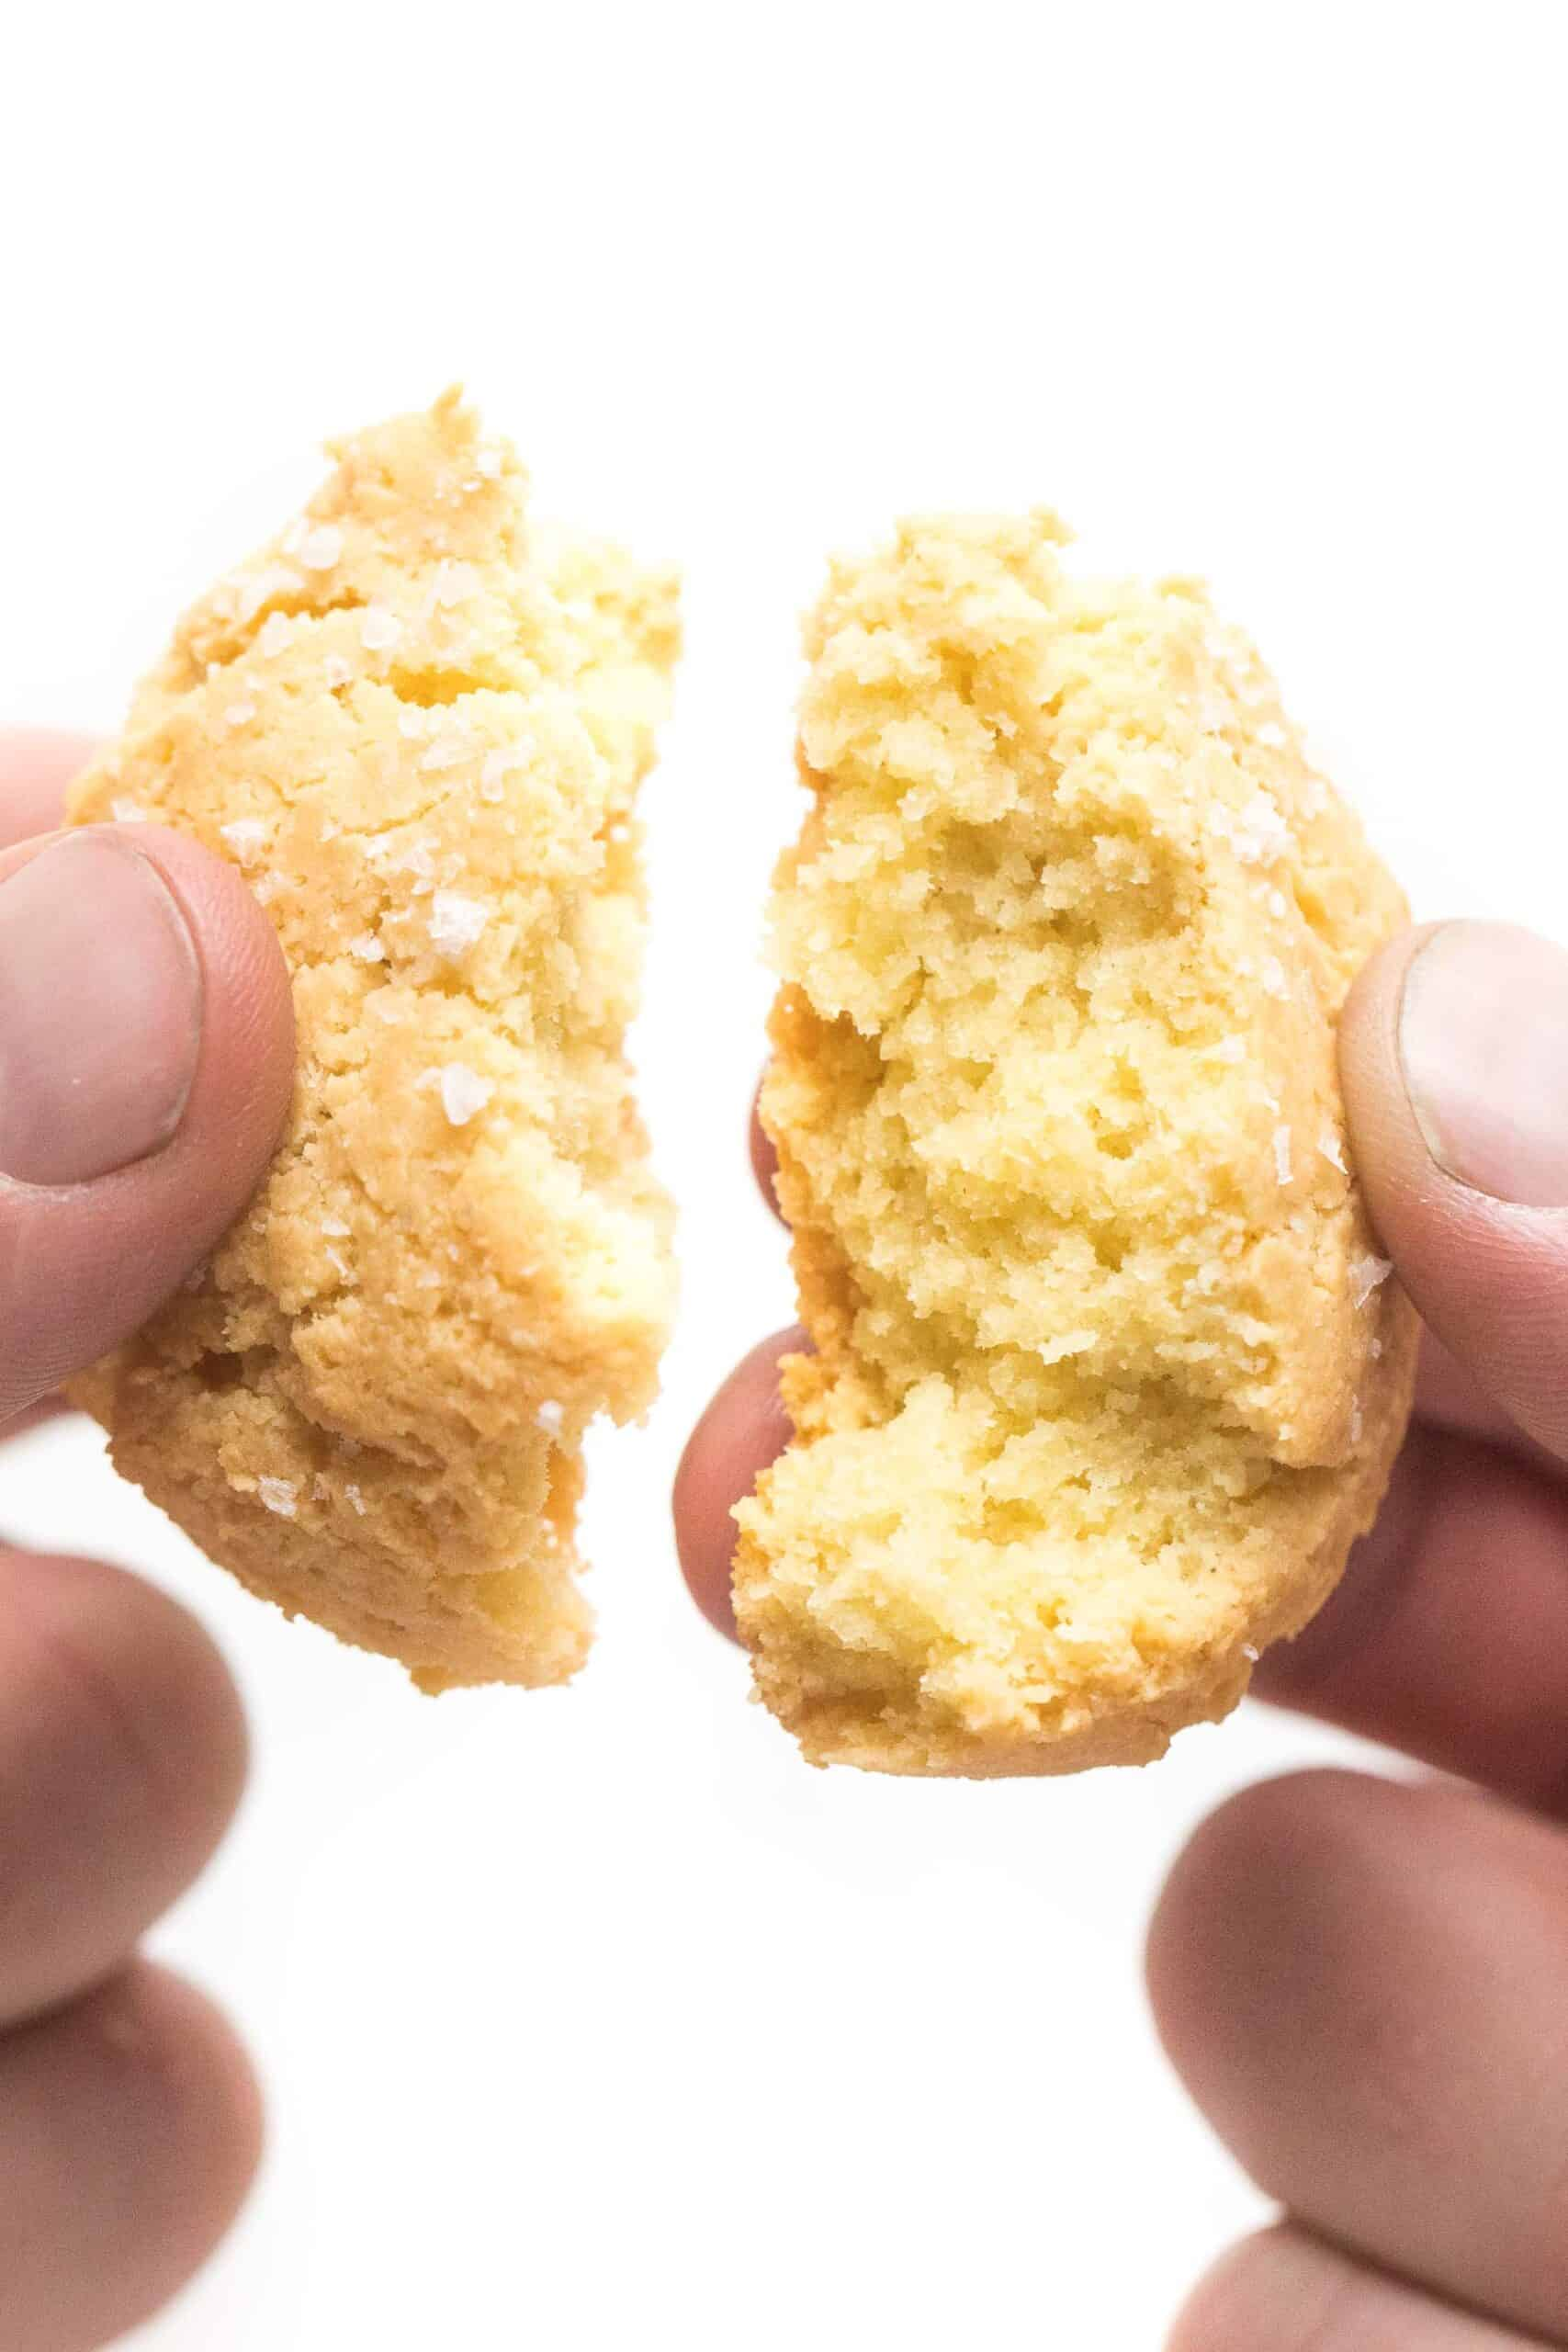 hand breaking apart a keto biscuit on a white background